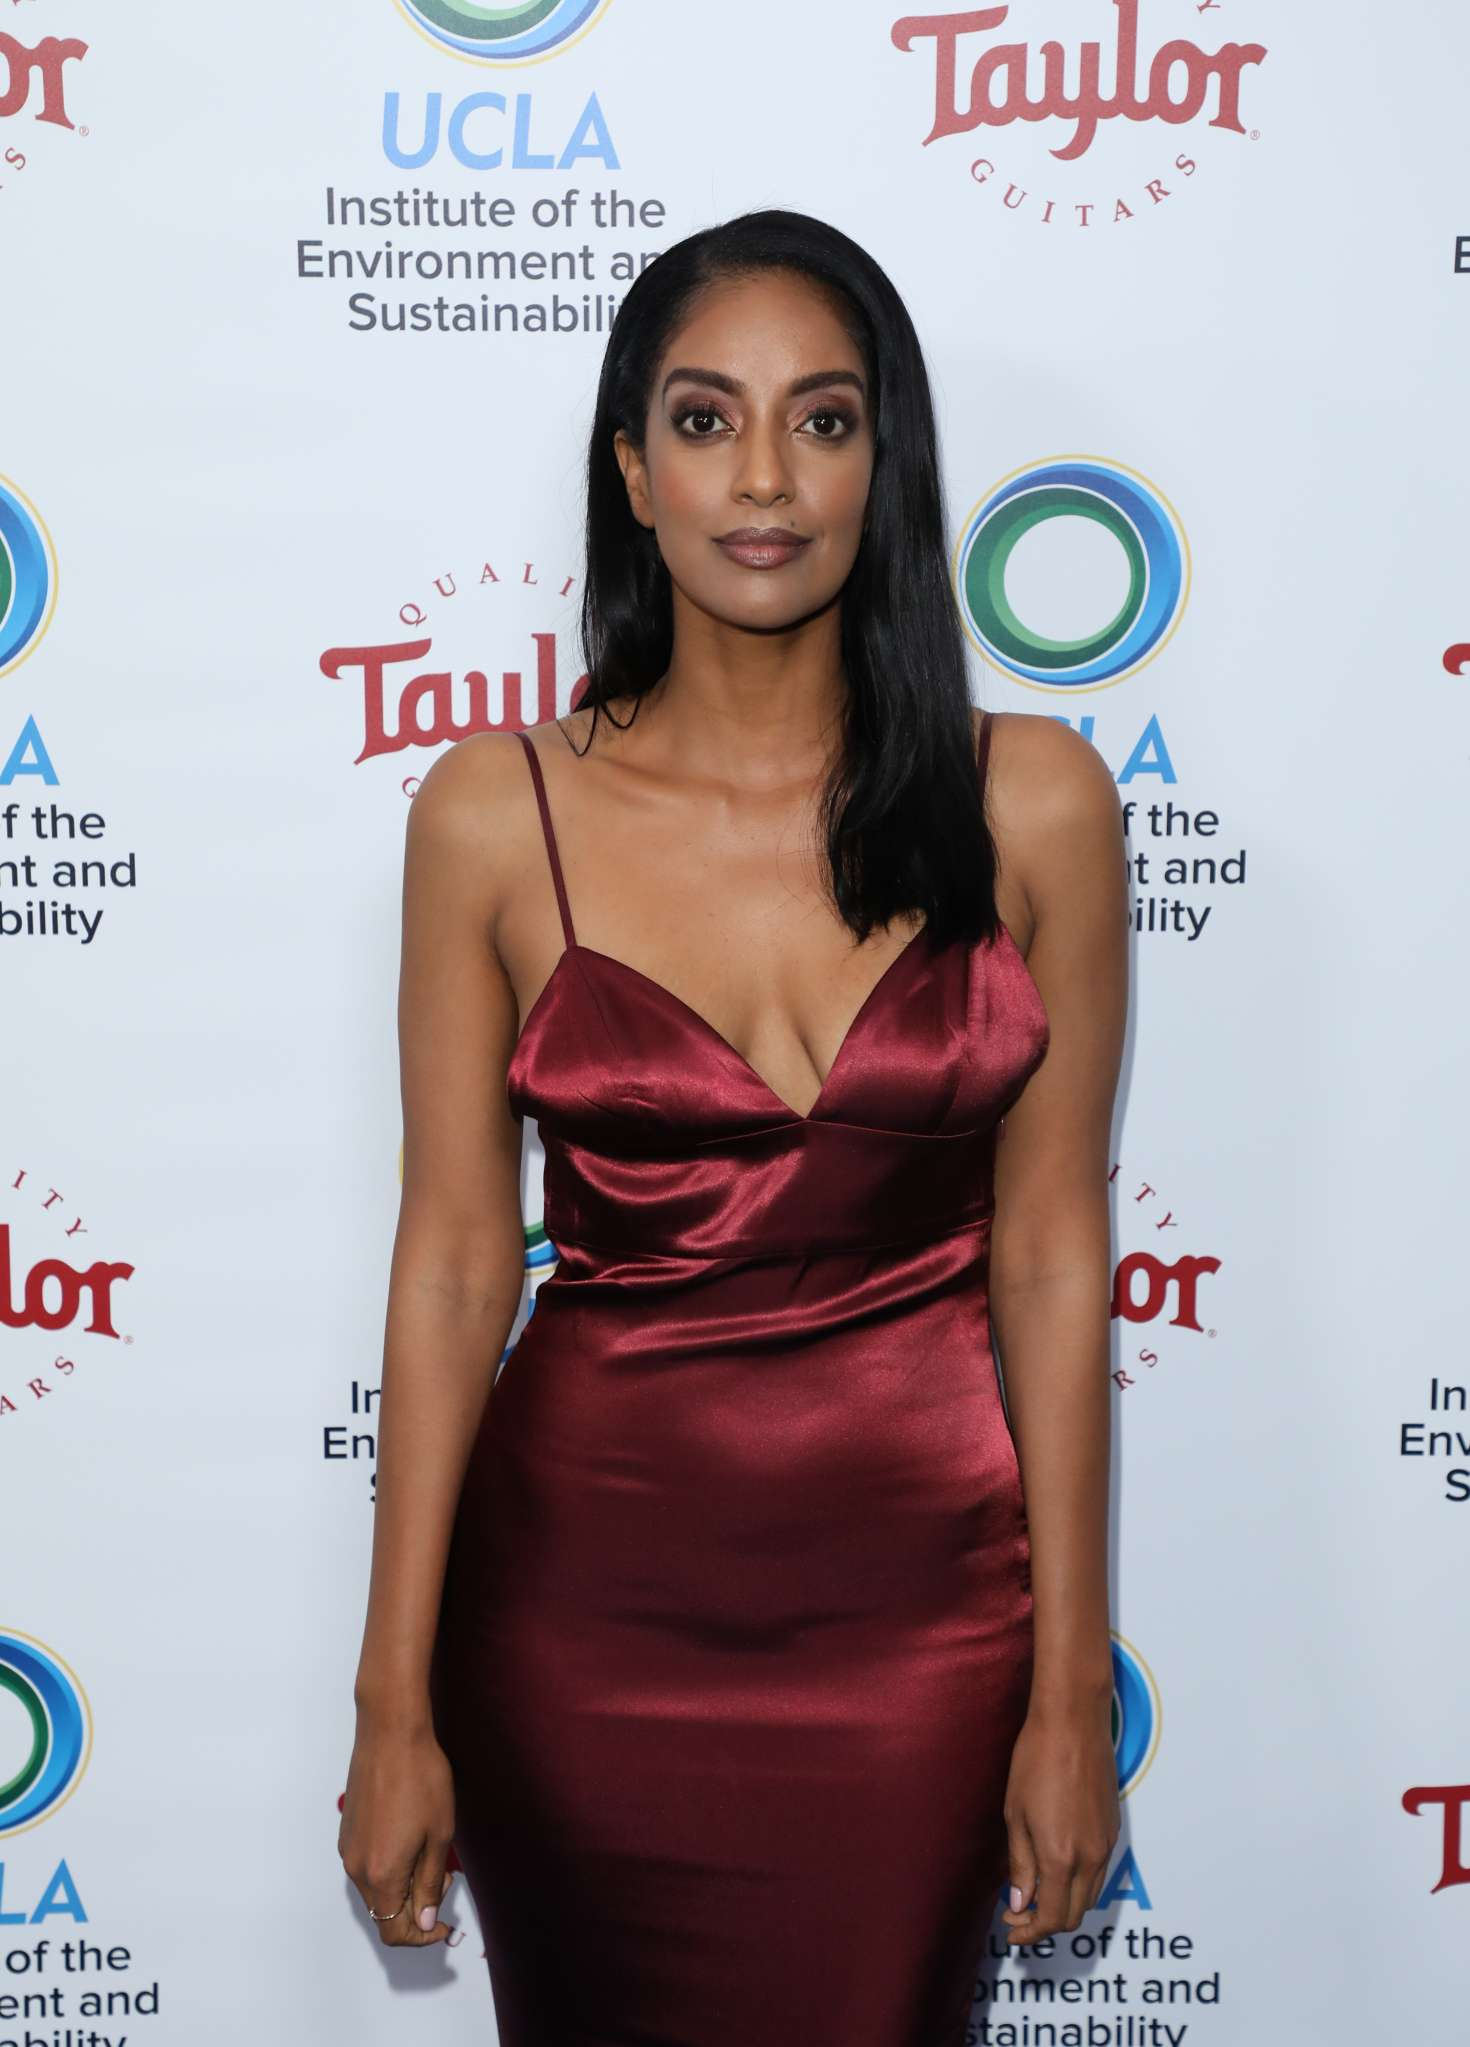 Azie Tesfai 2018 : Azie Tesfai: 2018 UCLAs Institute of the Environment and Sustainability Gala -01